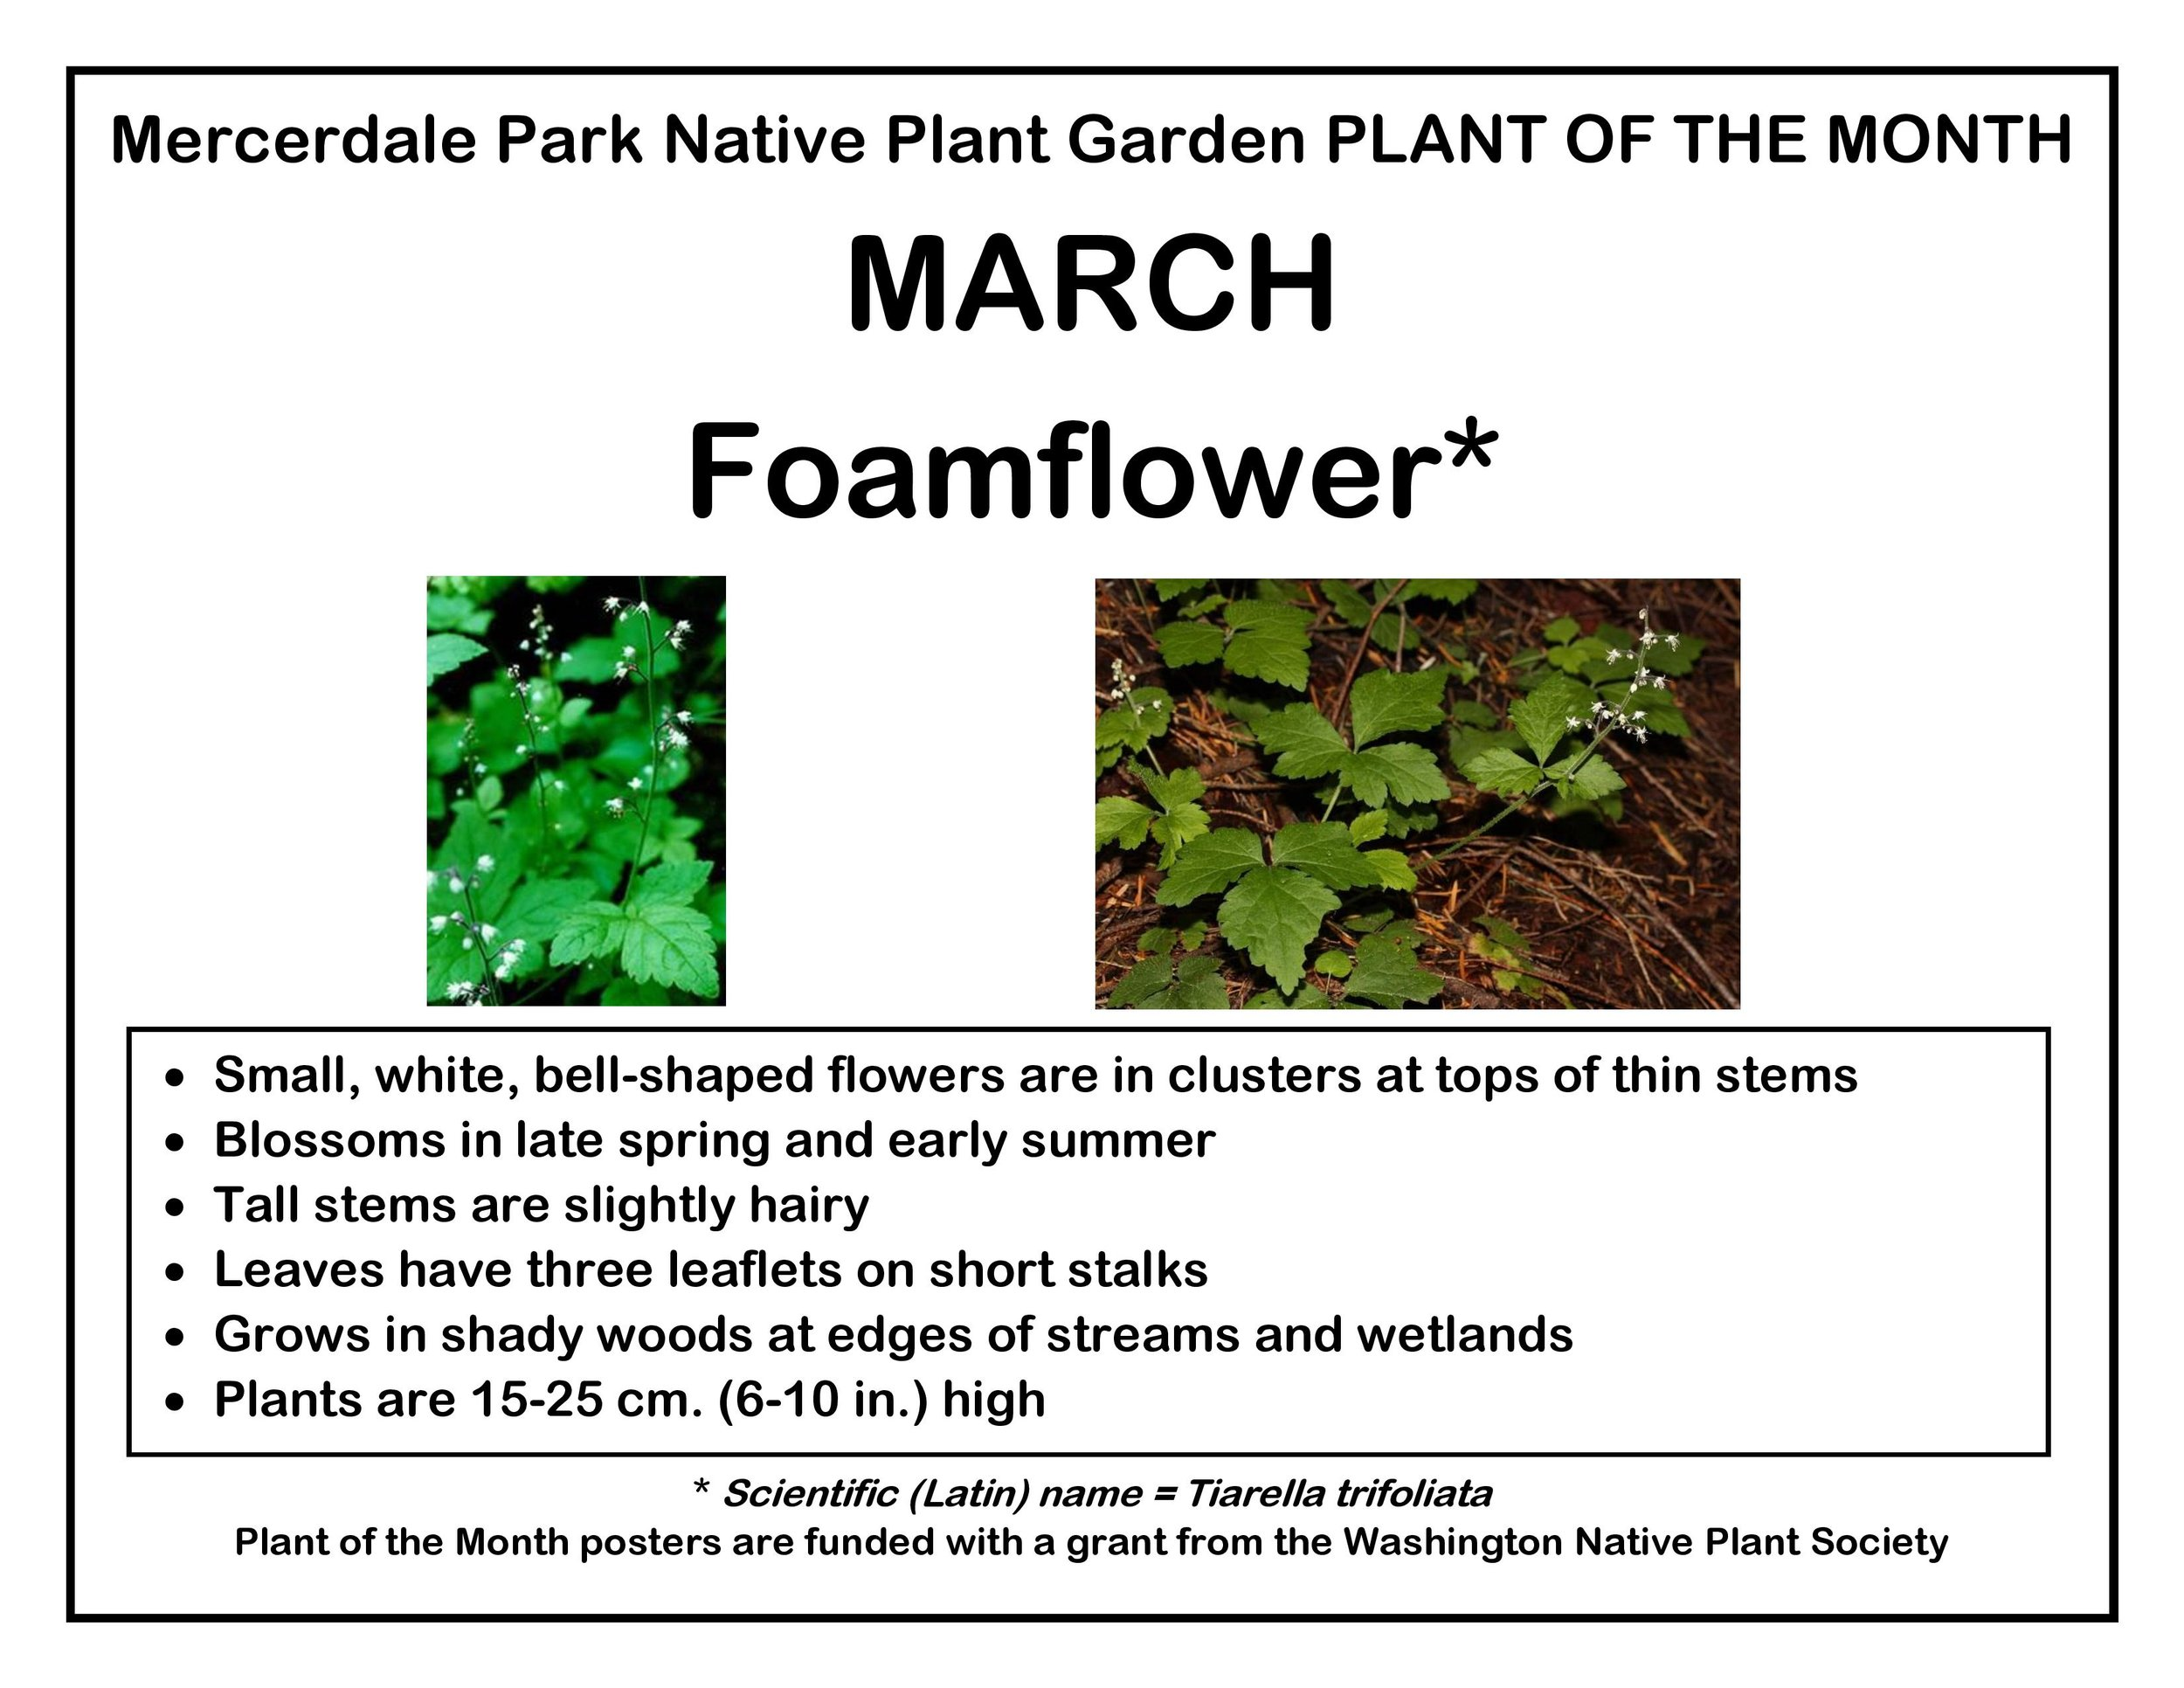 p PLANT OF THE MONTH 3 March Foamflower v2-page-001.jpg